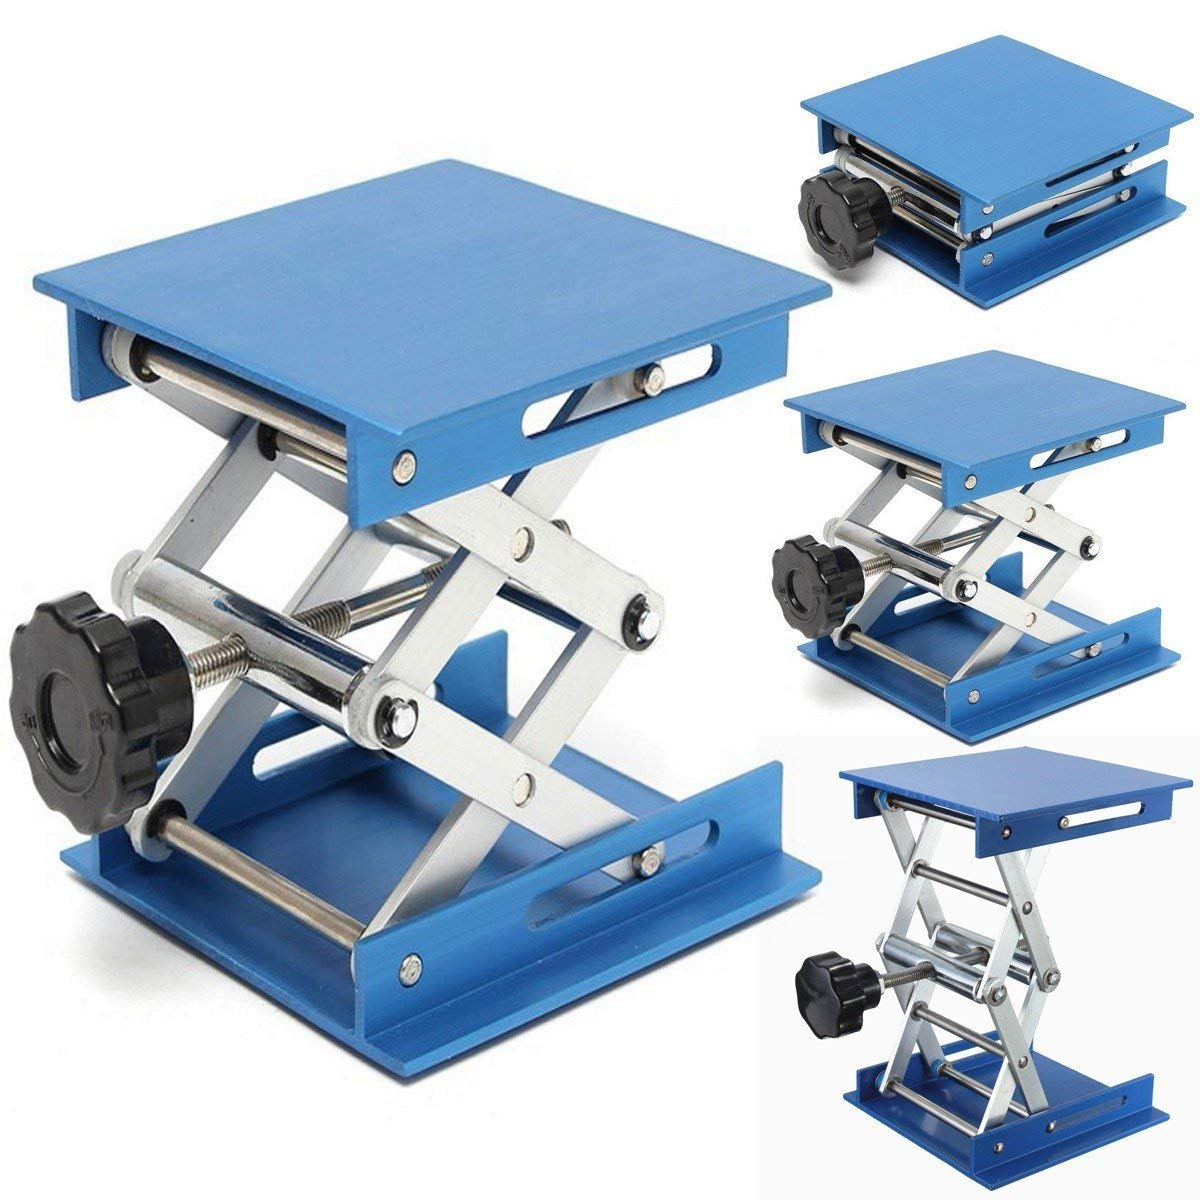 US $16 88 |Aluminum alloy Laboratory Jack Scissor Lift Platform Foldable  Lifting Table Pad Height Control Ideal Woodworking Machinery Parts-in